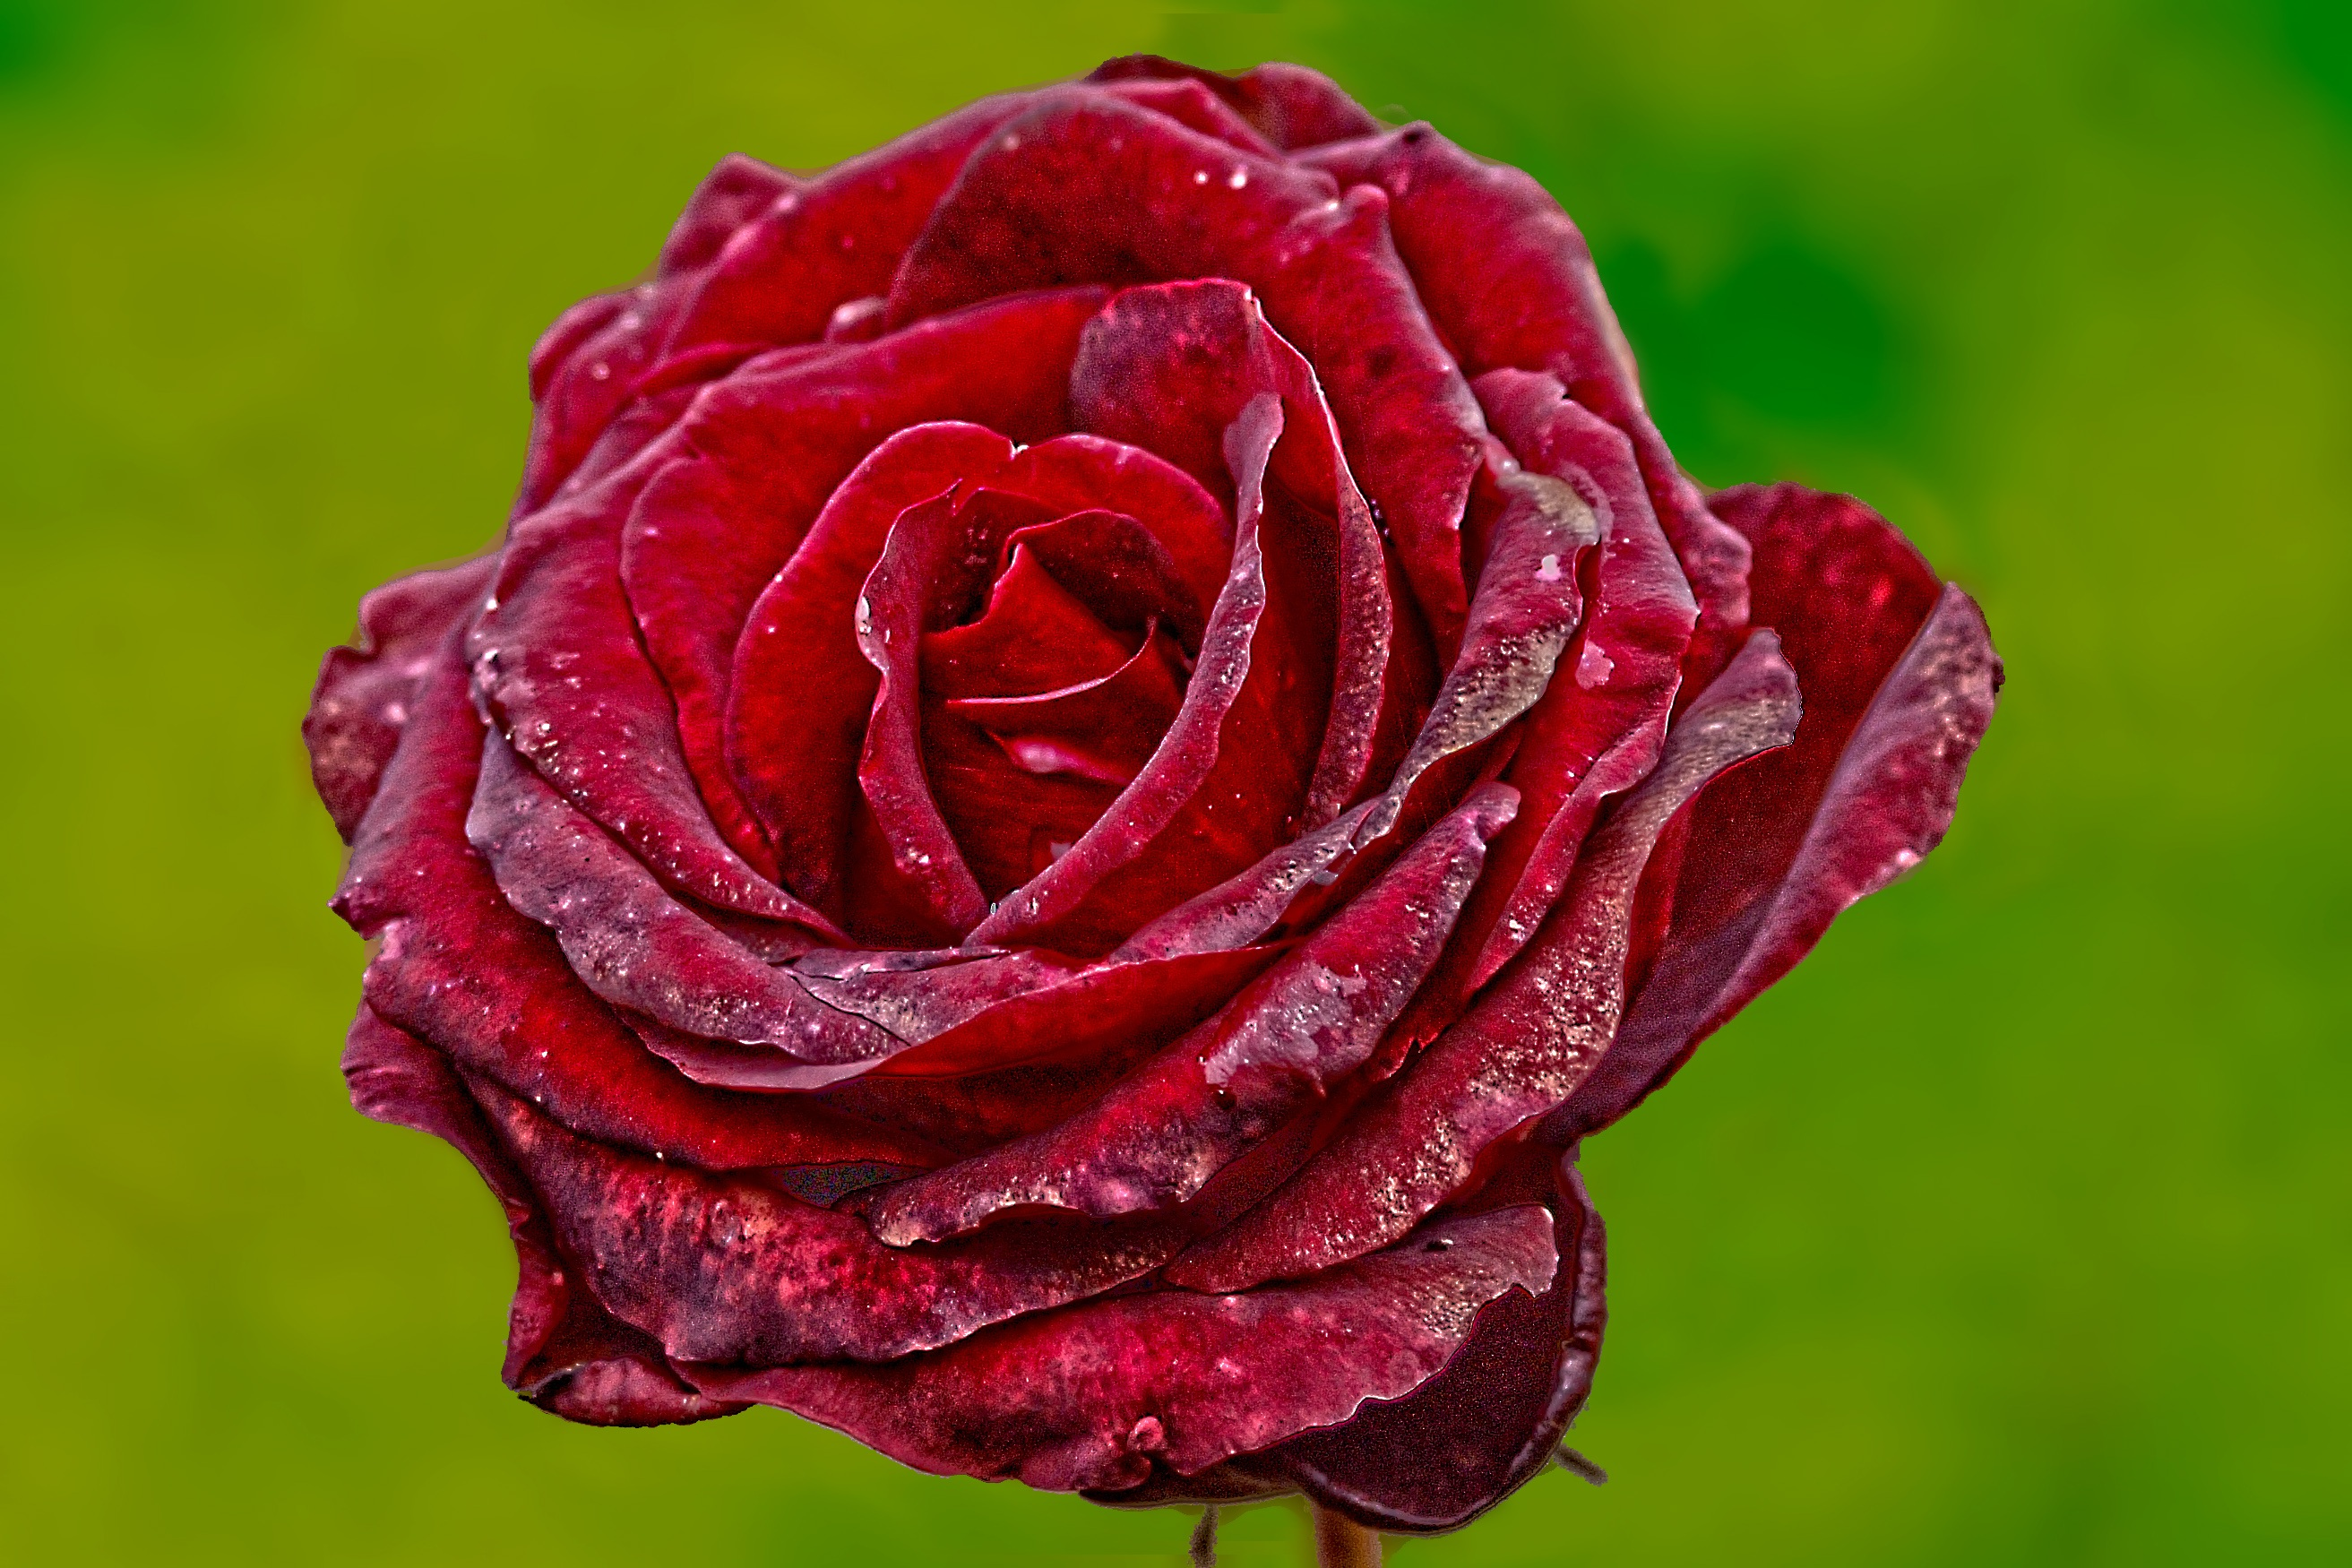 Red Rose With Green Background · Free Stock Photo